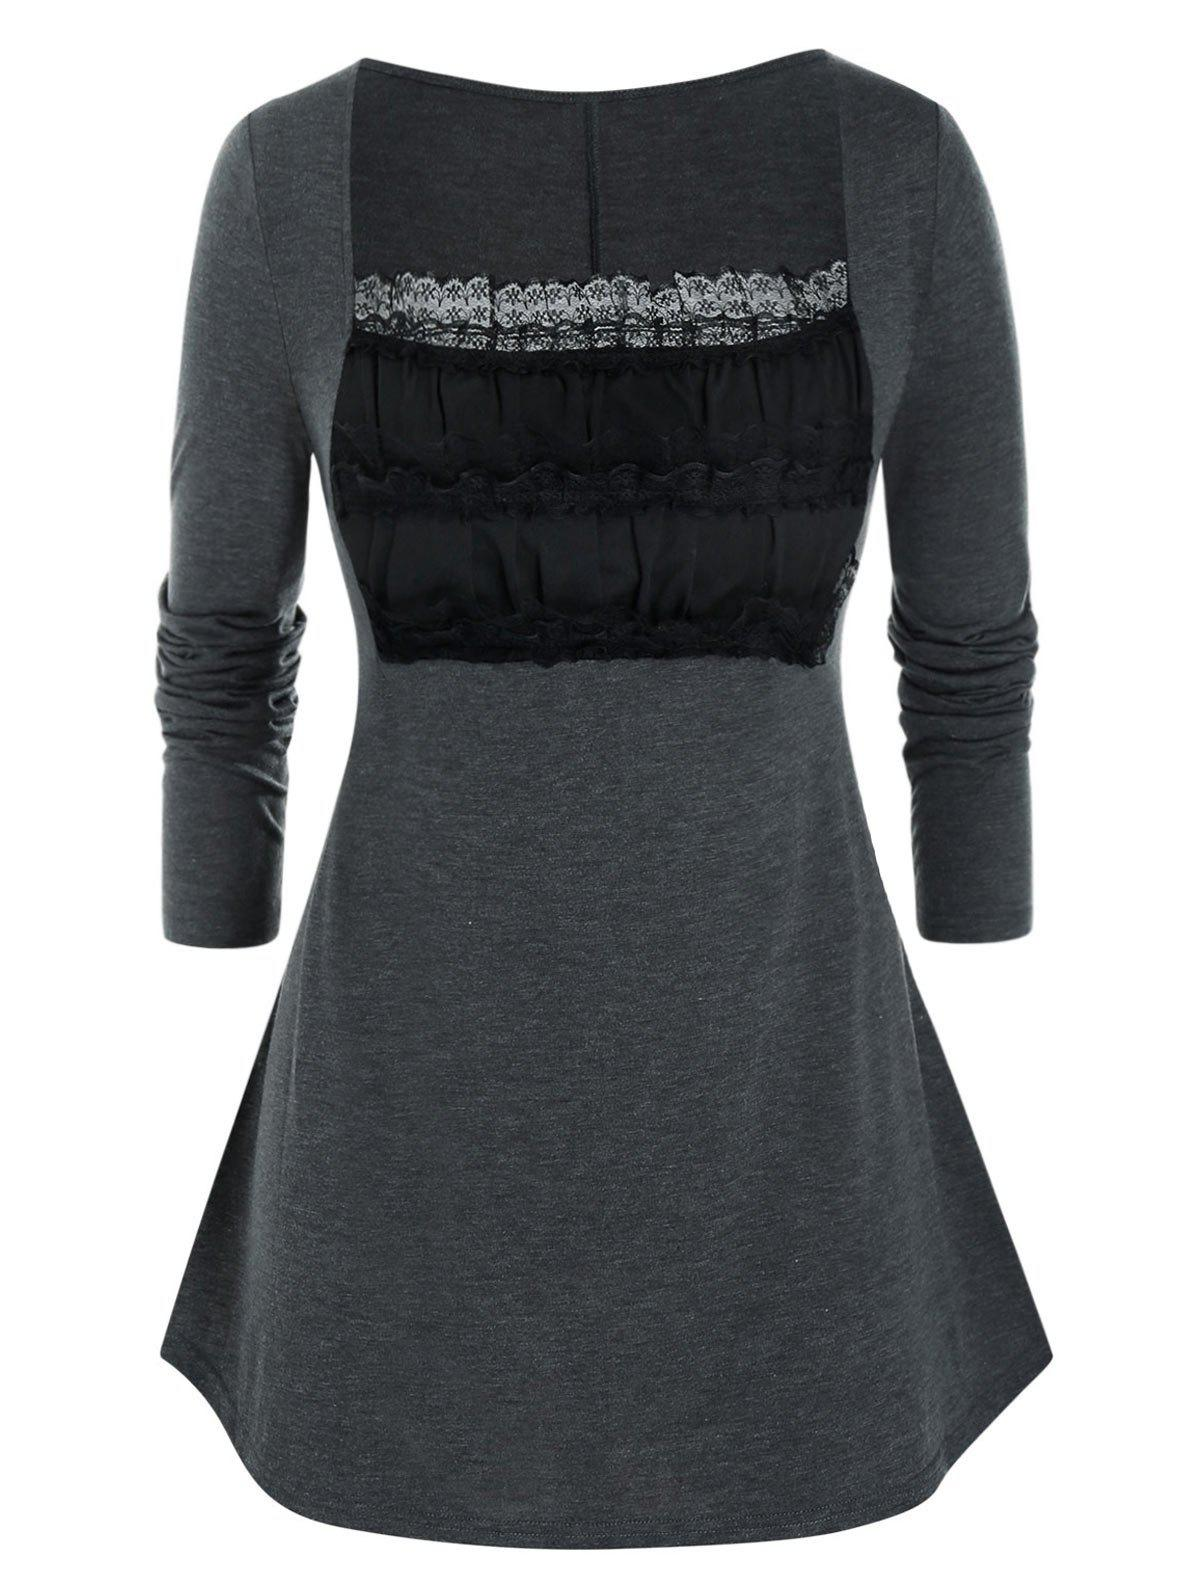 Plus Size Lace Ruched Bust Long Sleeve Tee - CARBON GRAY 5X